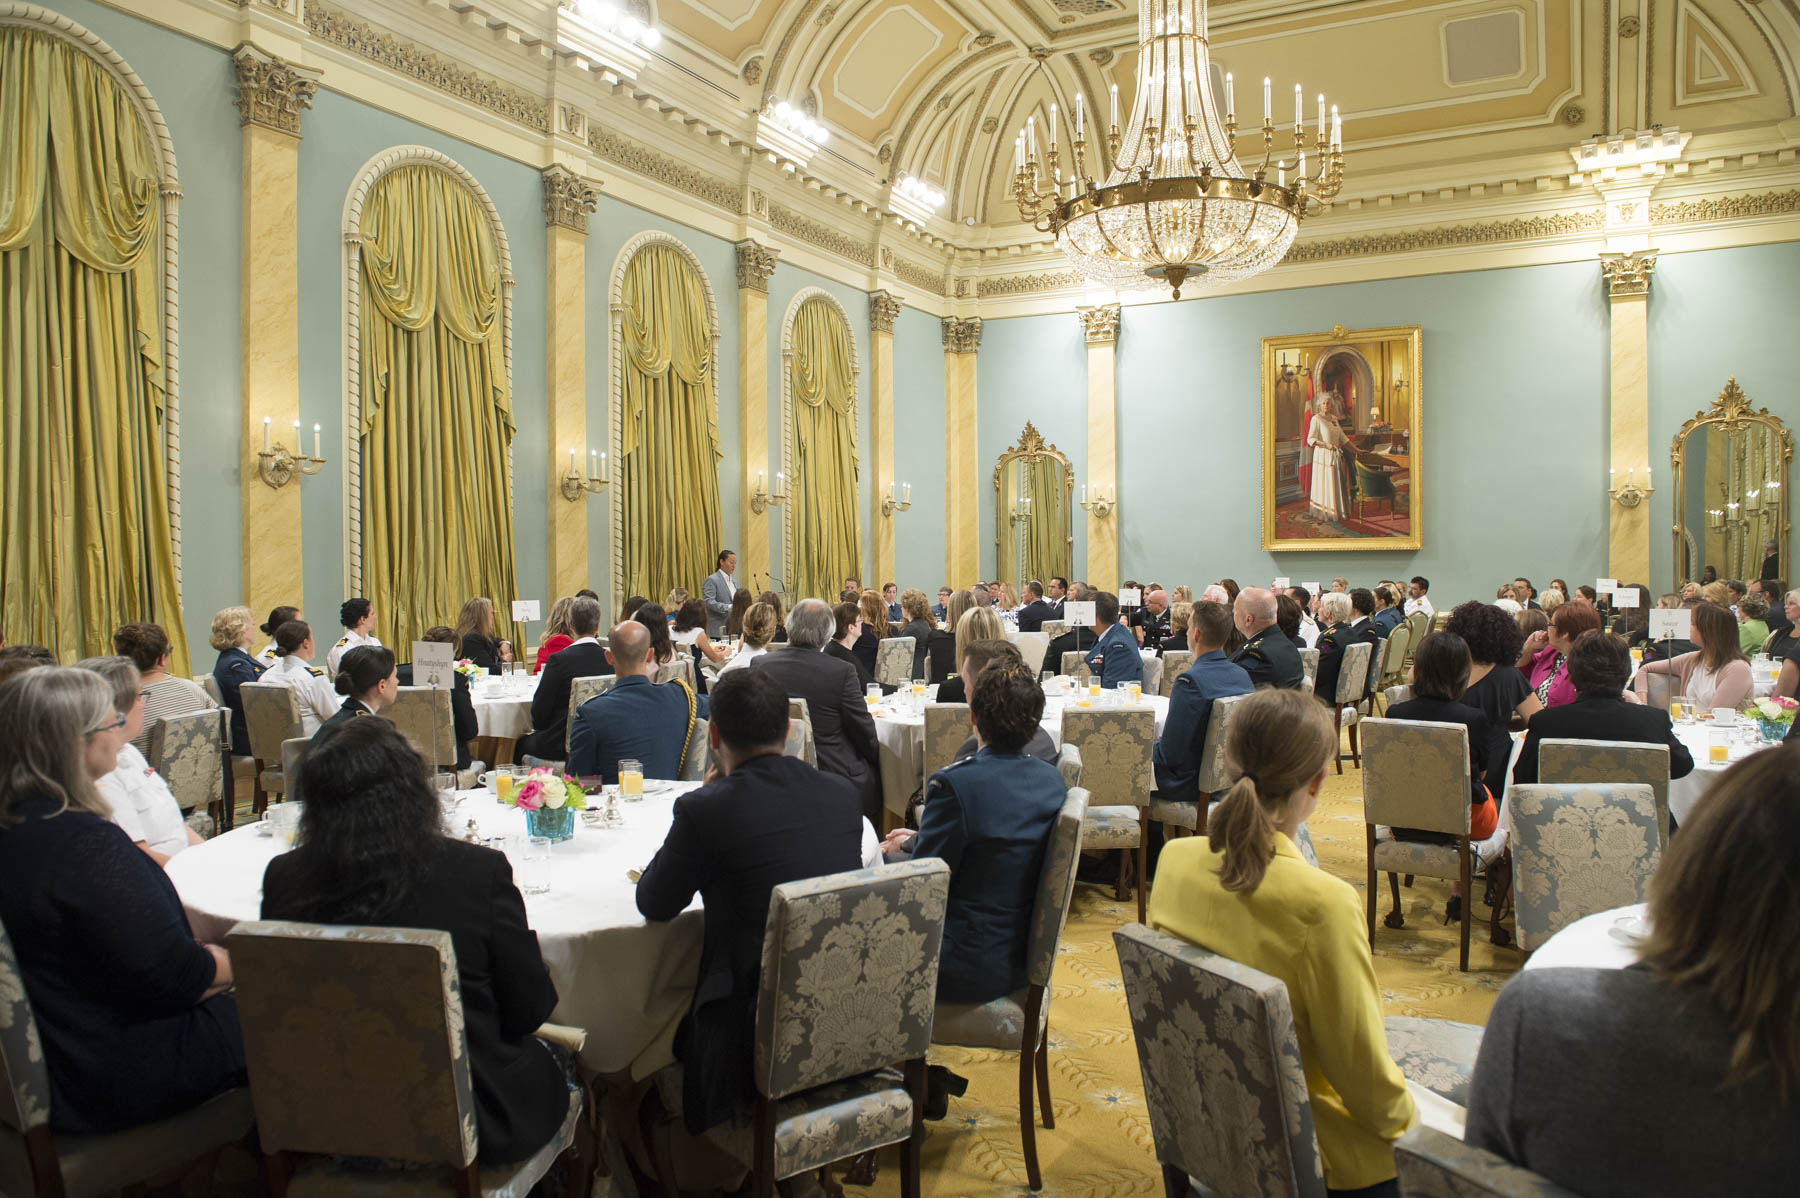 Her Excellency Sharon Johnston hosted the Canadian Forces Morale and Welfare Services Executive Women's Breakfast at Rideau Hall on August 18, 2017.  The event served to recognize the significant contribution of women in the Canadian Armed Forces and the importance of mental wellness.